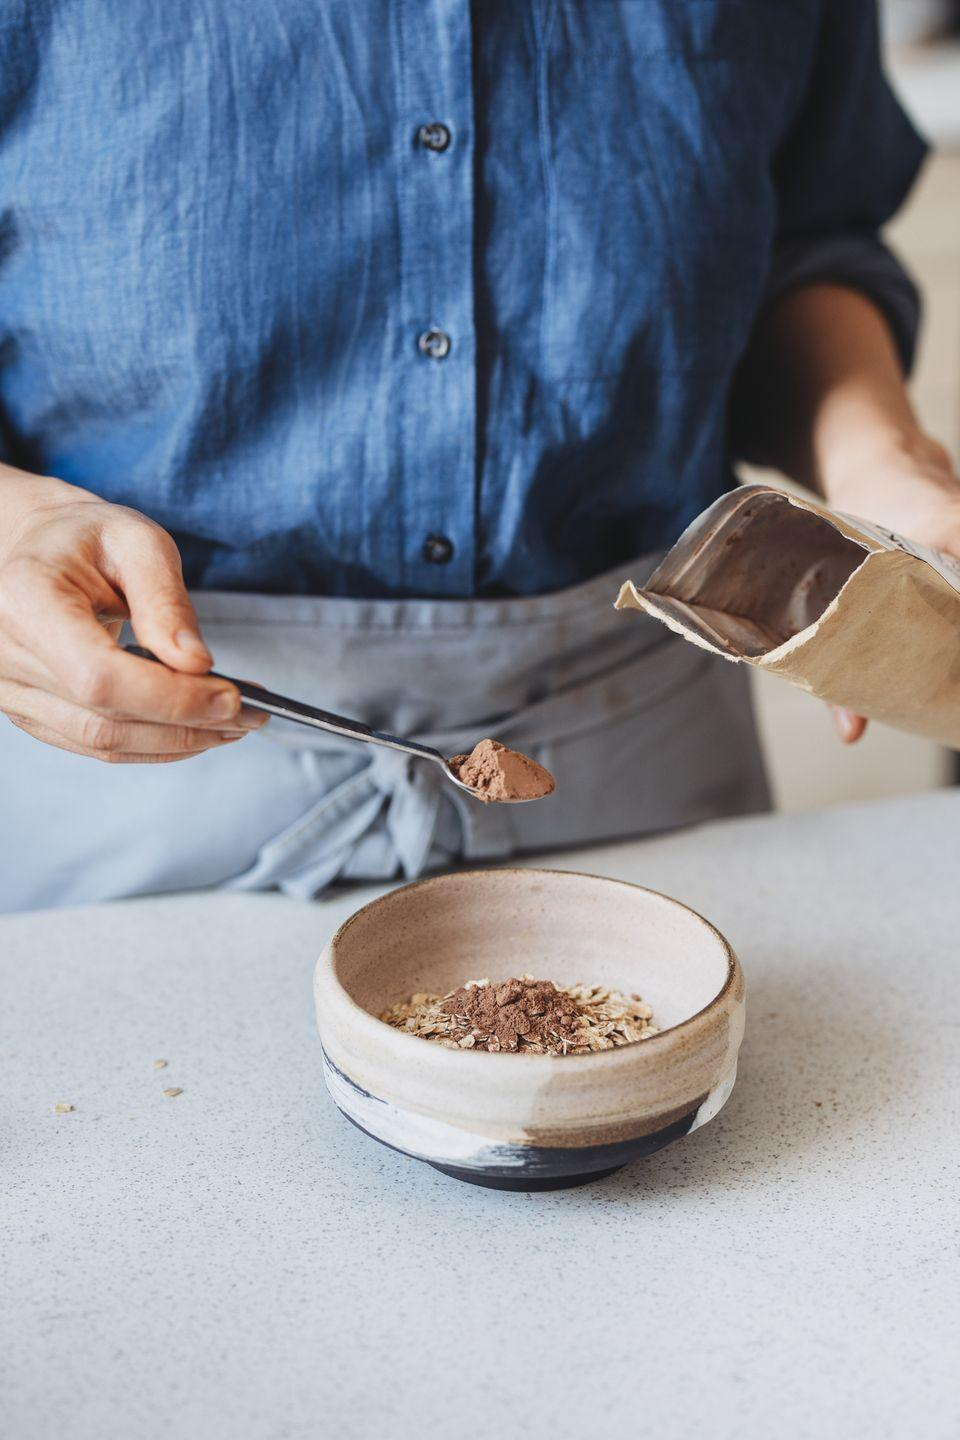 """<p>""""<strong>One serving of oatmeal is right around 150 calories and also provides around 3-4 grams of fiber to support healthy digestion.</strong> I love adding a tablespoon of nut butter for an extra source of healthy fats that helps with both overall satiety and flavor,"""" Zhu says. </p>"""